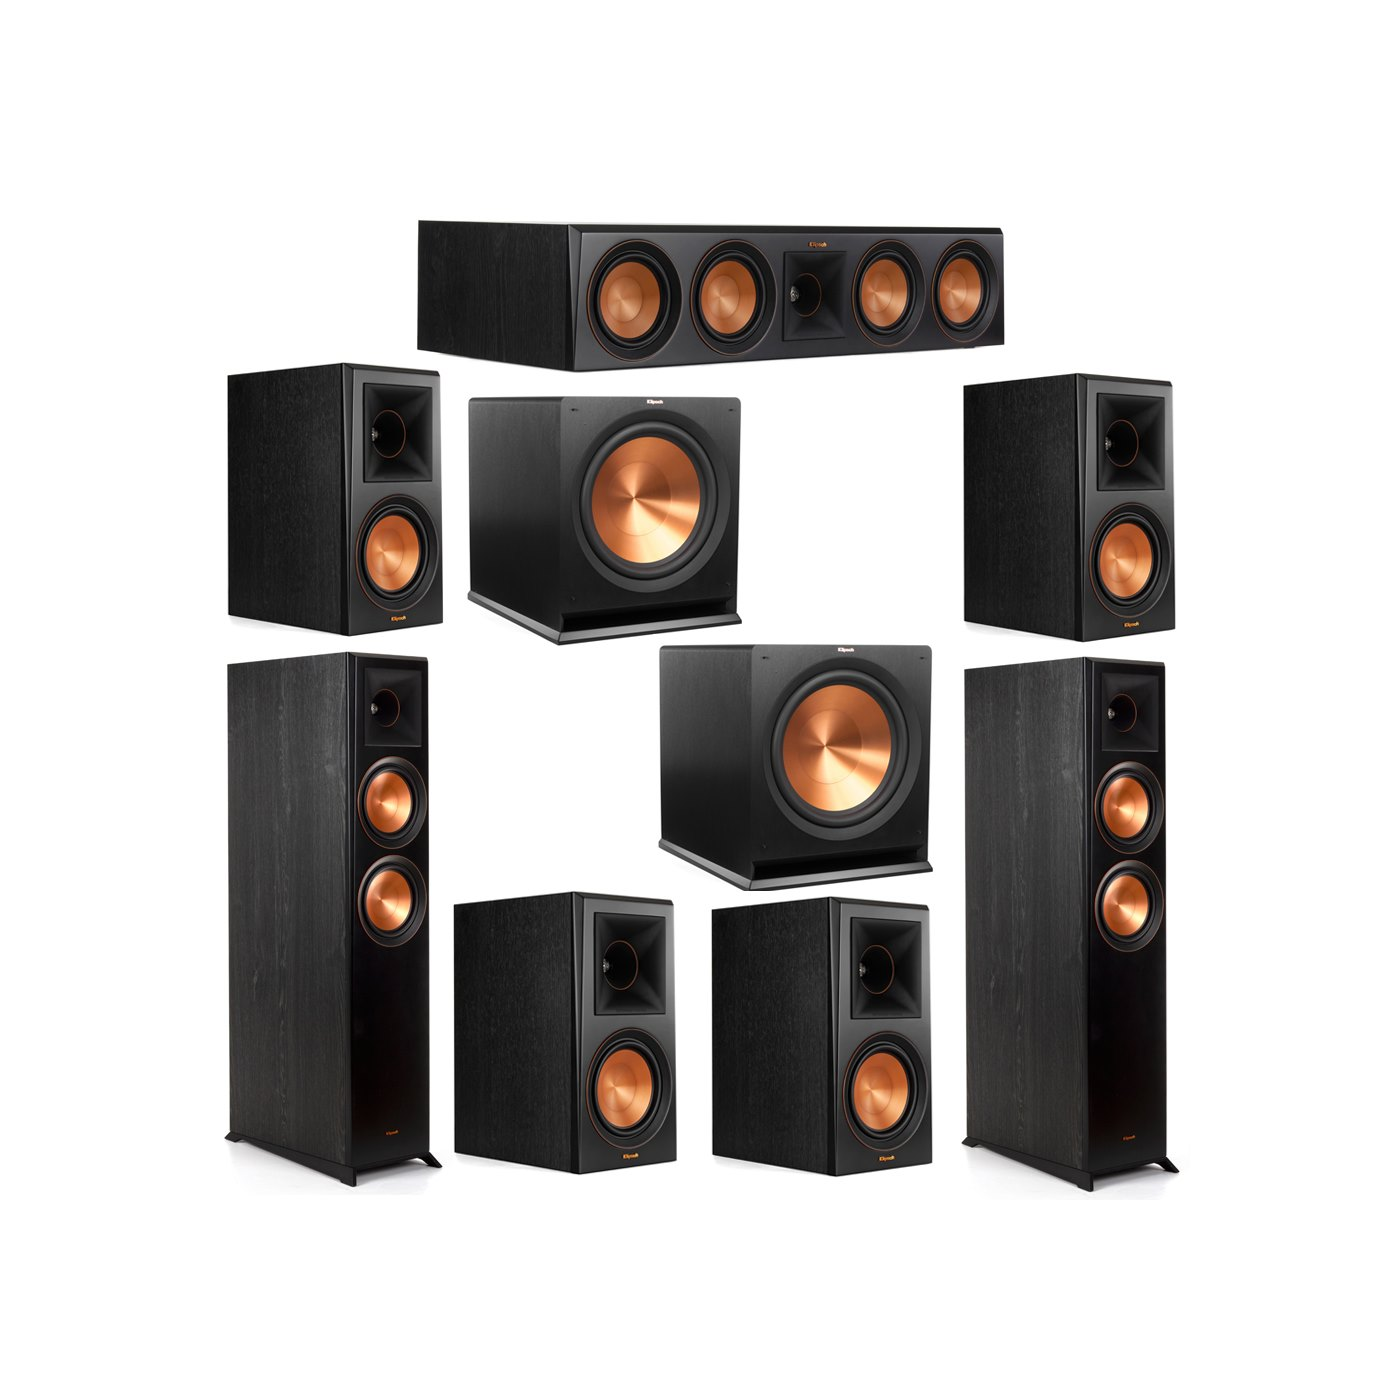 Klipsch 7.2 System with 2 RP-6000F Floorstanding Speakers, 1 Klipsch RP-504C Center Speaker, 4 Klipsch RP-600M Surround Speakers, 2 Klipsch R-115SW Subwoofers